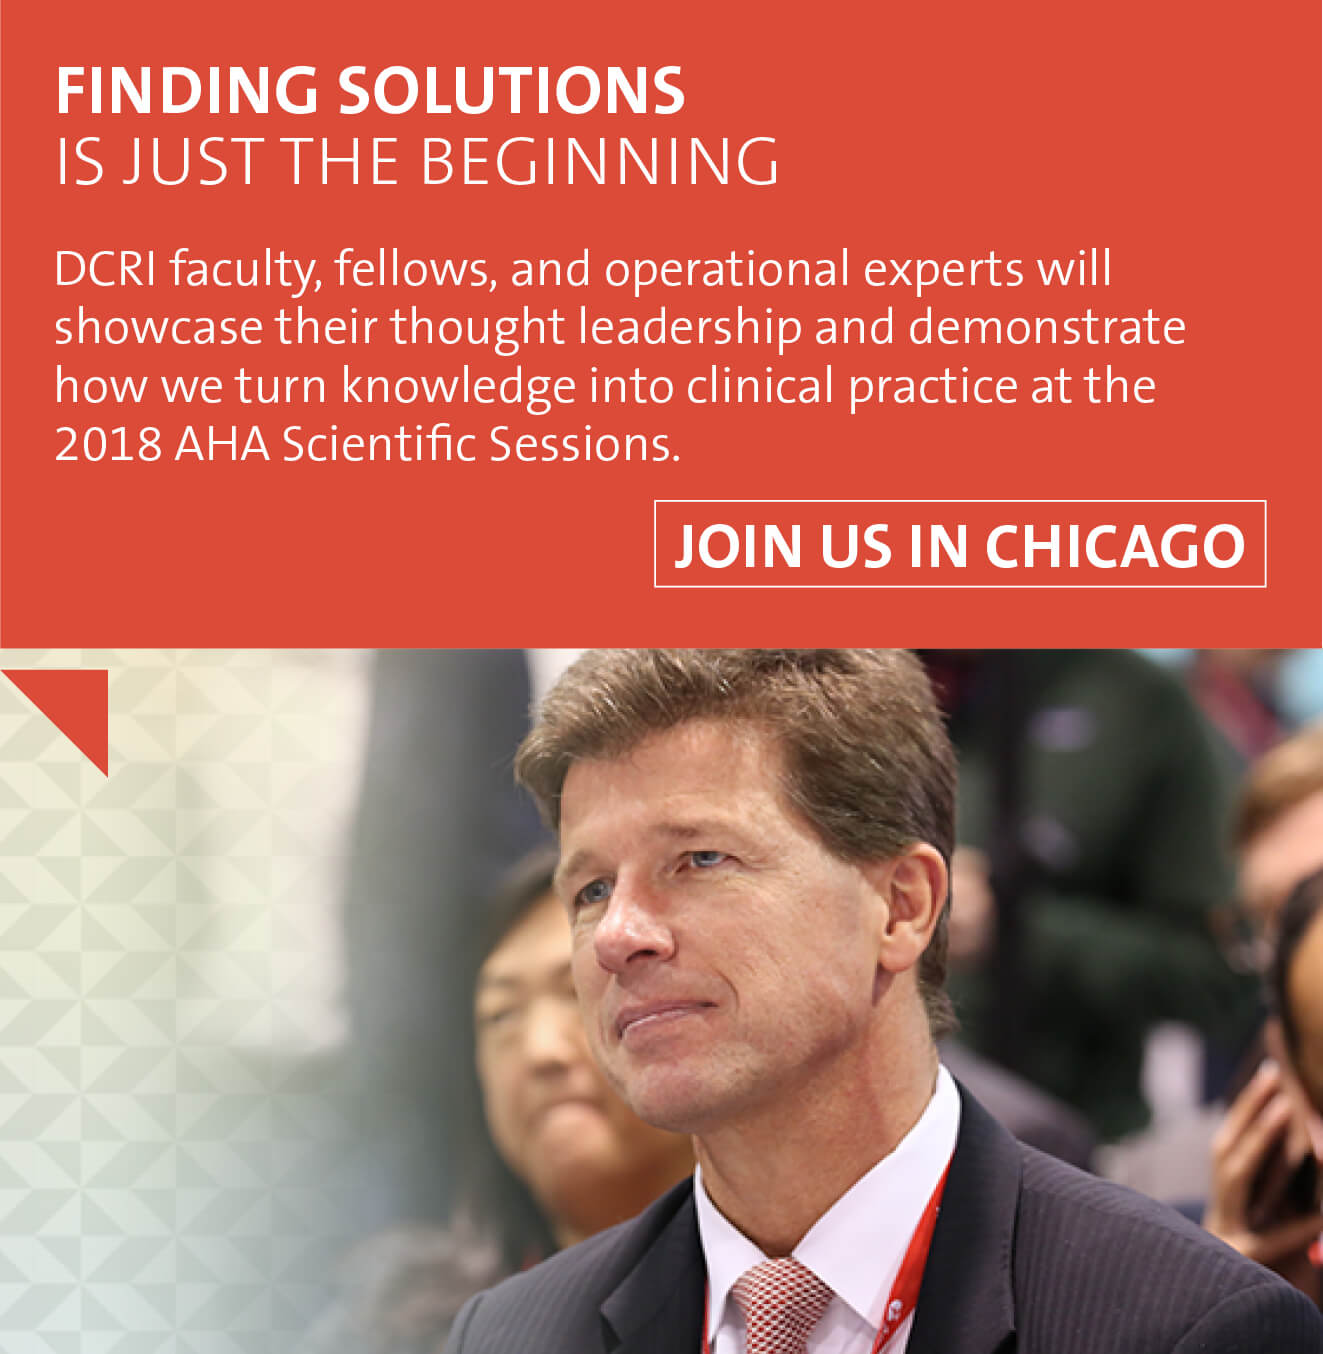 Finding Solutions Is Just the Beginning. At the 2018 AHA Scientific Sessions, DCRI faculty, fellows, and operational experts showcased their though leadership and demonstrated how we turn knowledge into clinical practice.